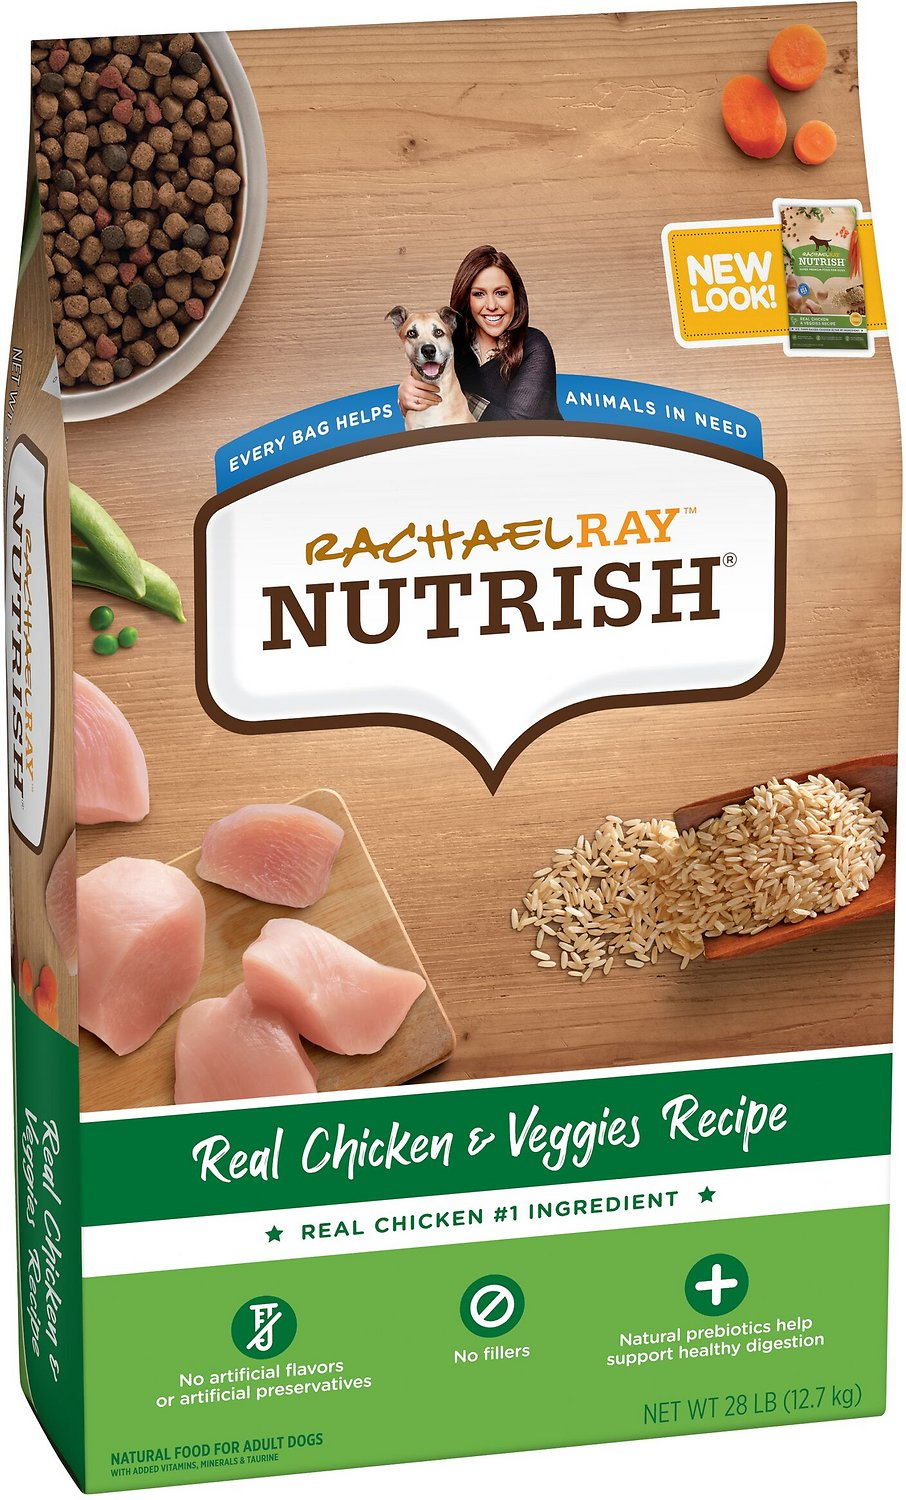 Rachael Ray Nutrish Natural Chicken Veggies Recipe Dry Dog Food